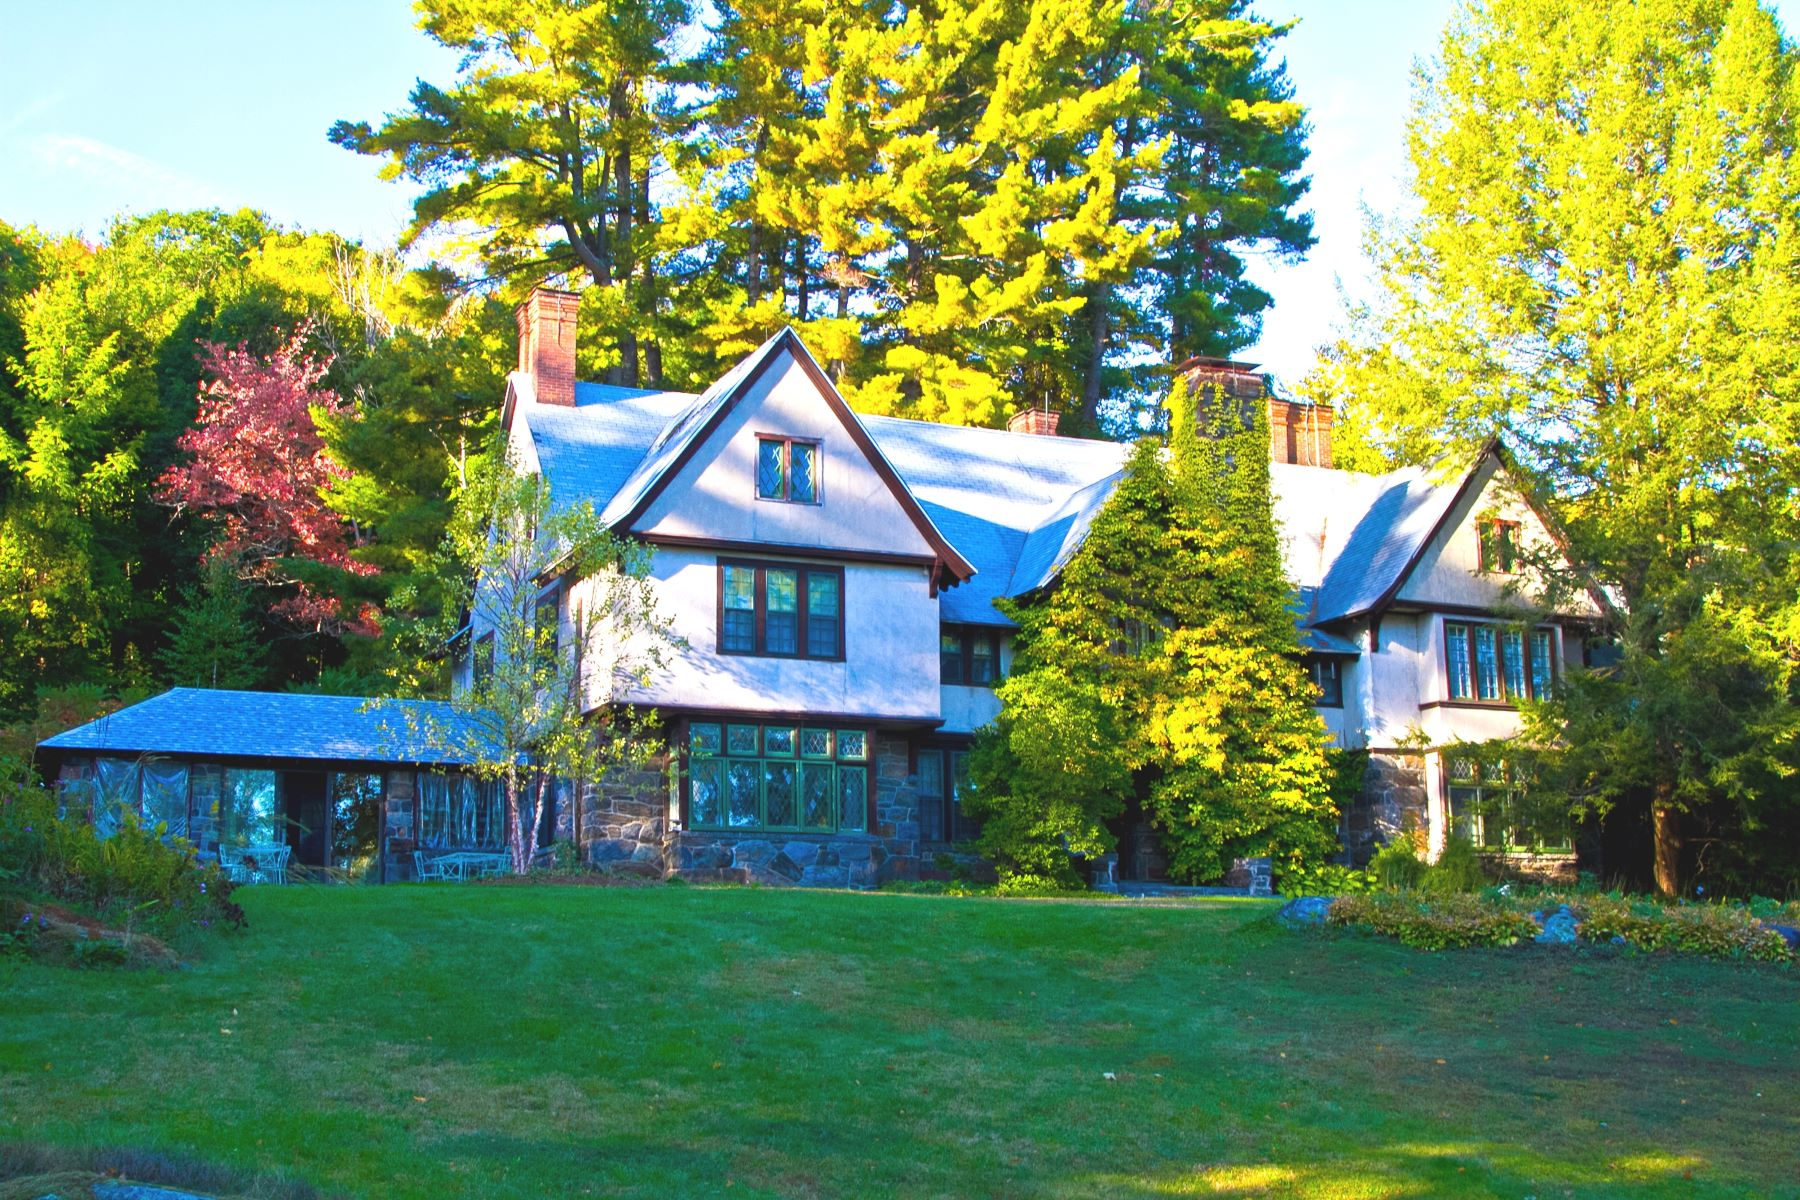 Casa Unifamiliar por un Venta en A Magnificent Tudor Mansion with Views, Majestically Set on 8 Lenox Acres 399 Under Mountain Rd Lenox, Massachusetts 01240 Estados Unidos